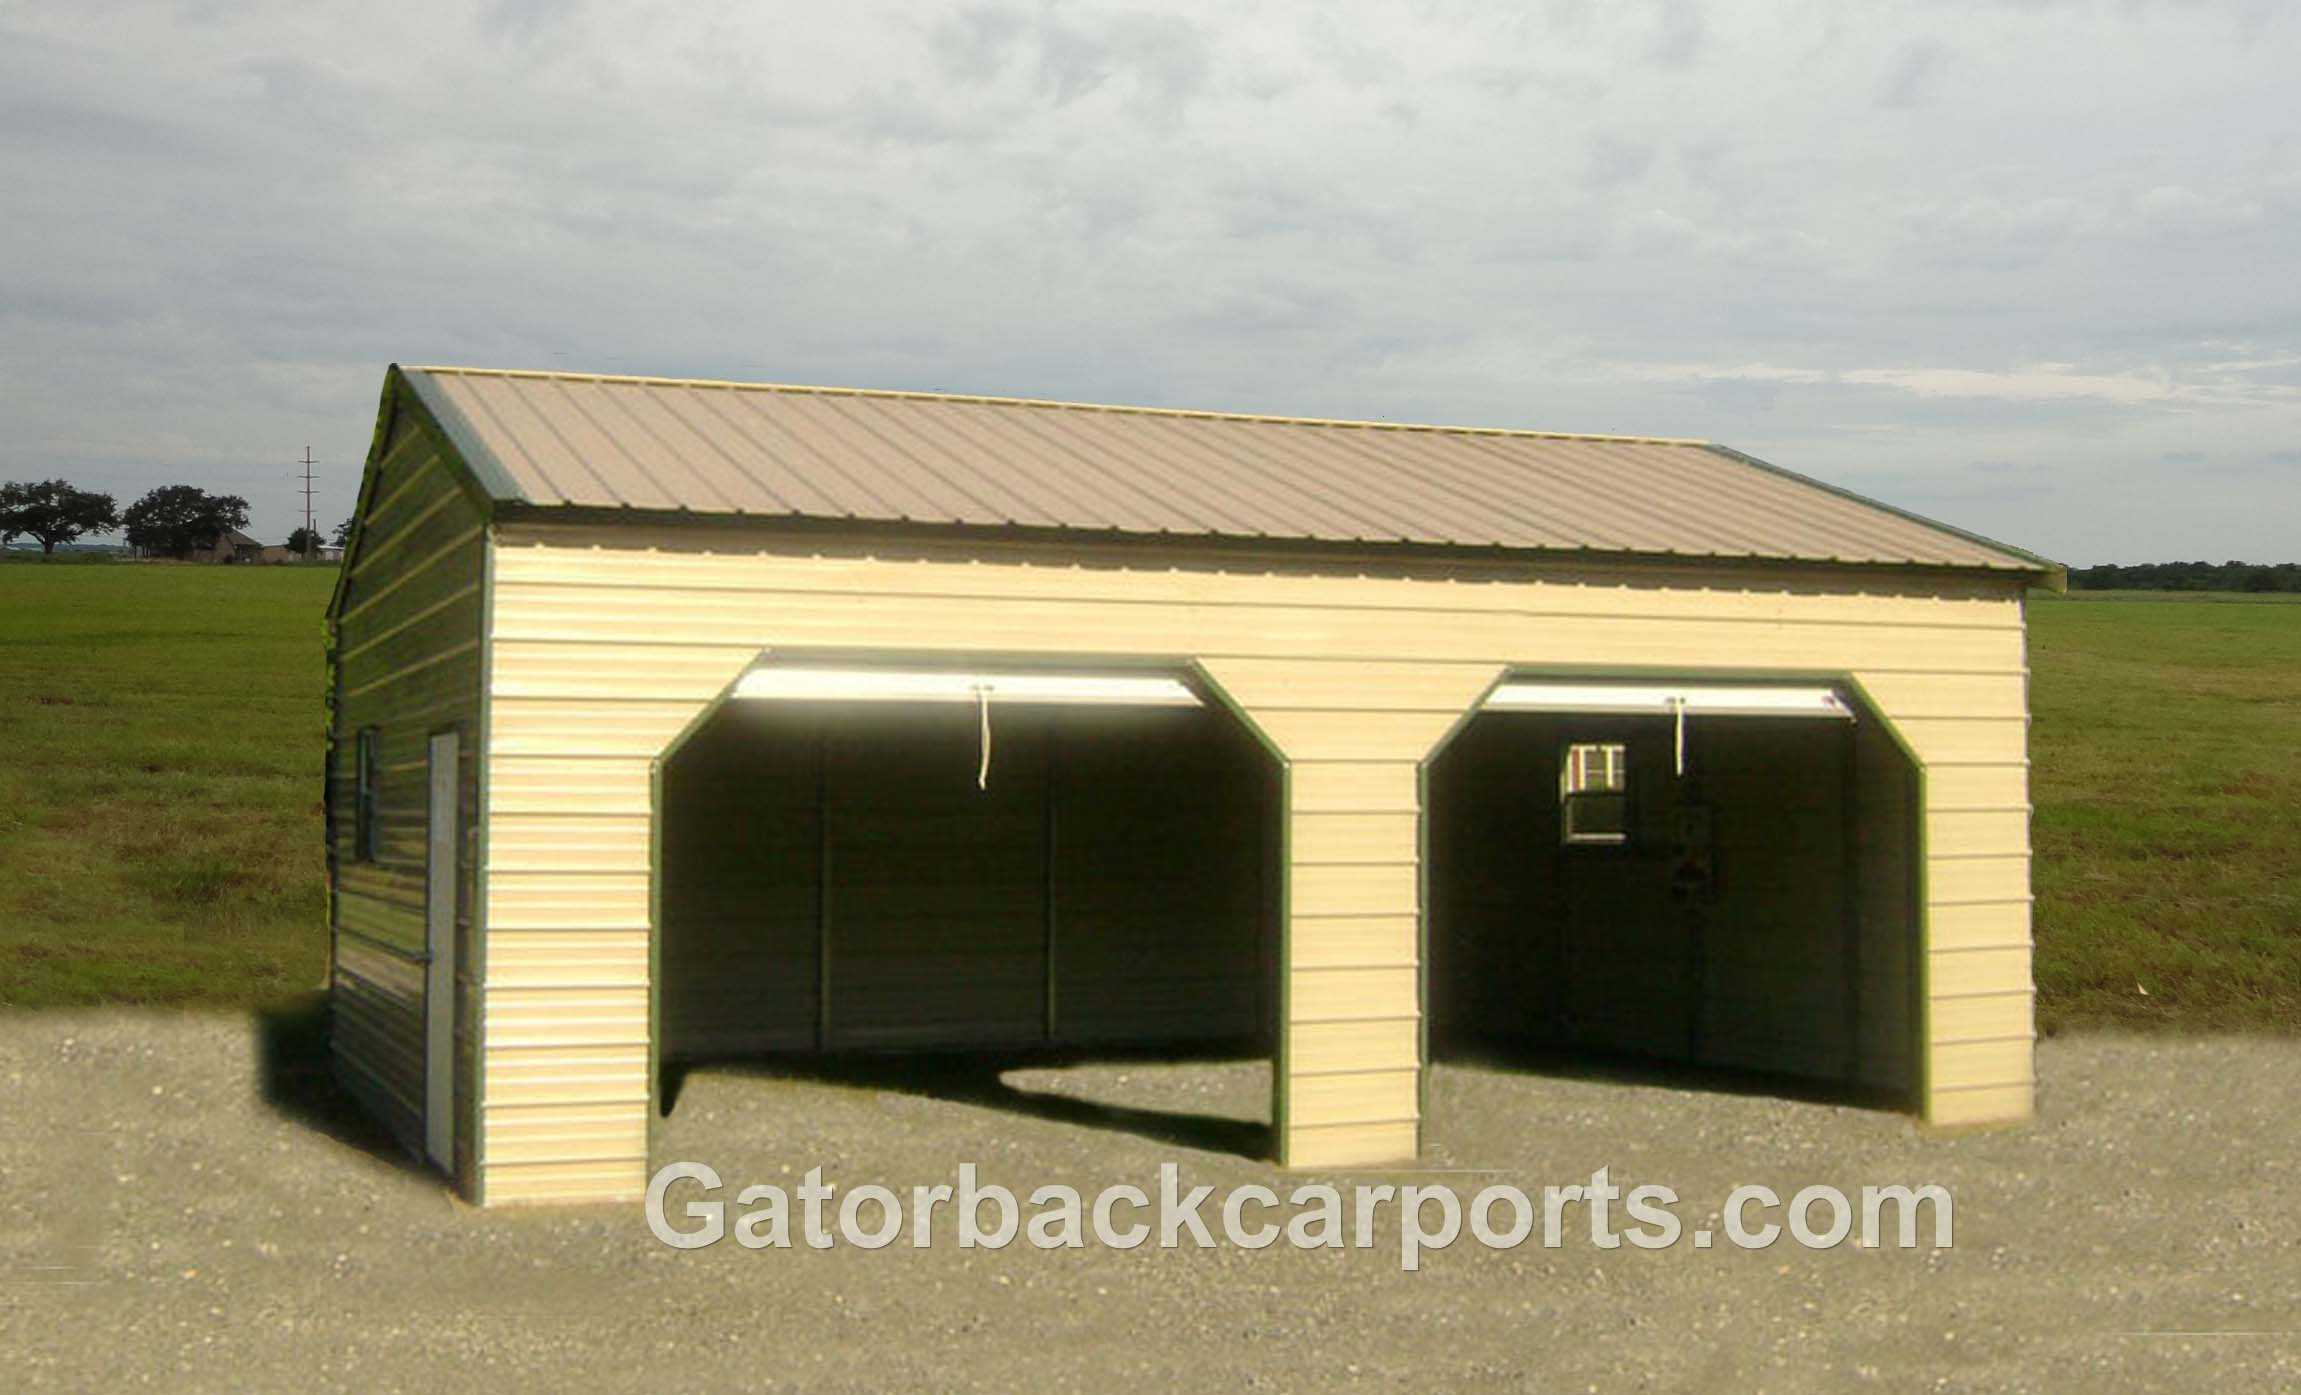 Garages gallery gatorback carports for Garage side entry door